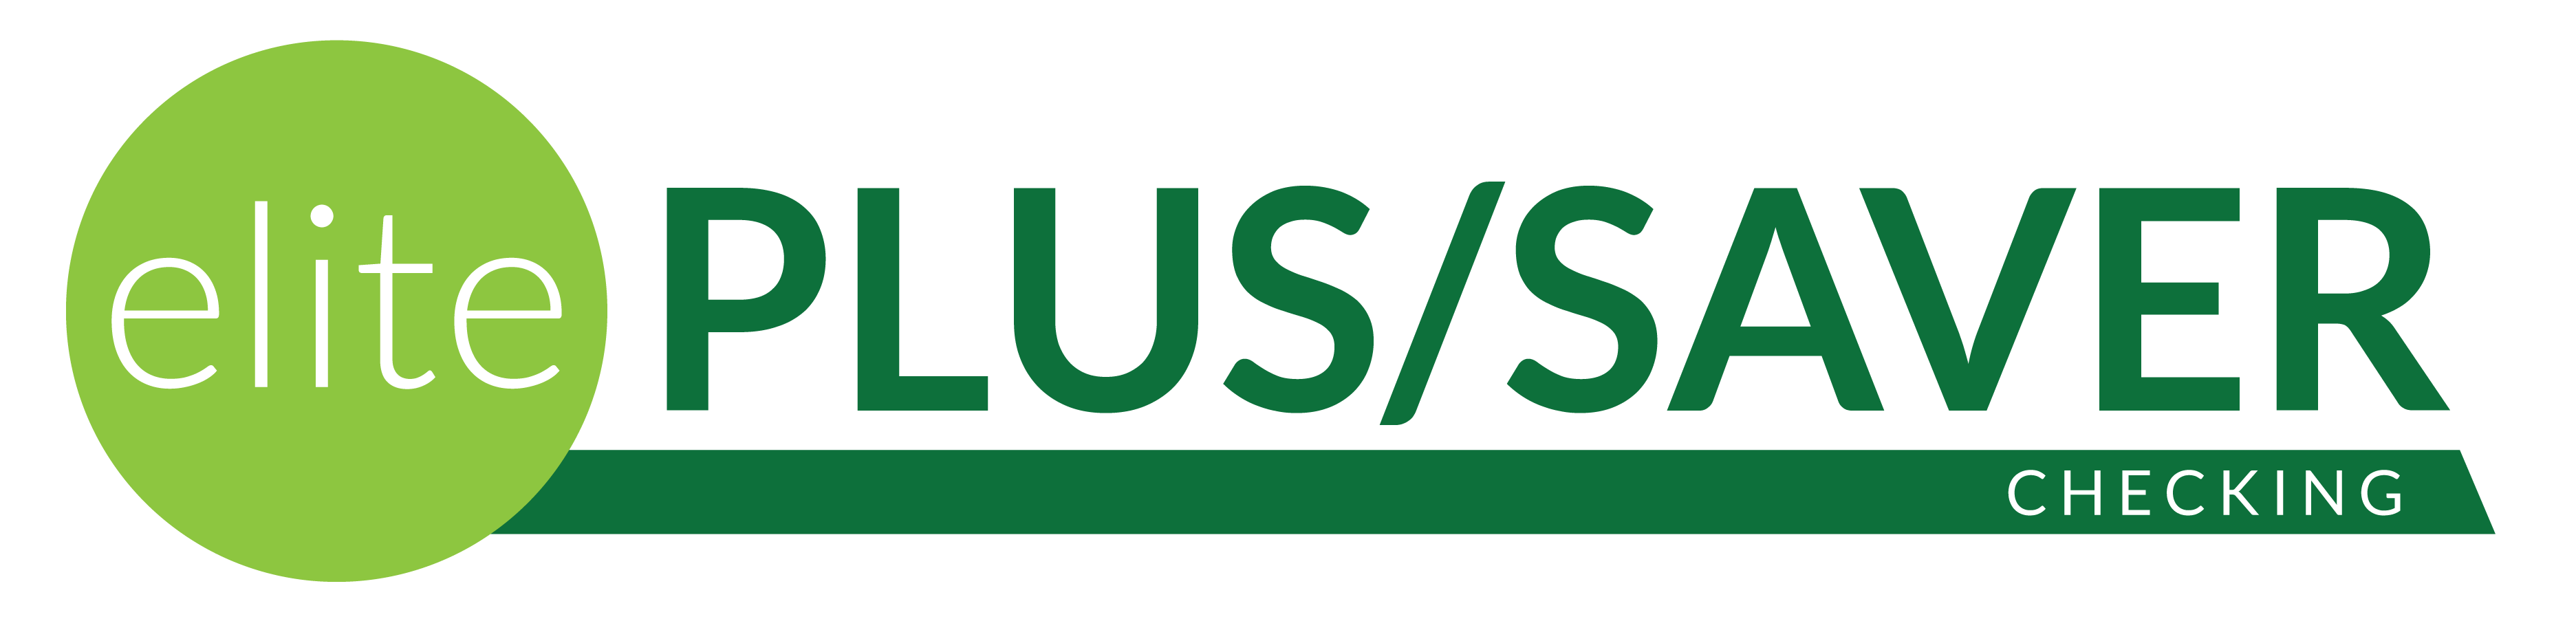 Elite Plus/Saver Checking Logo